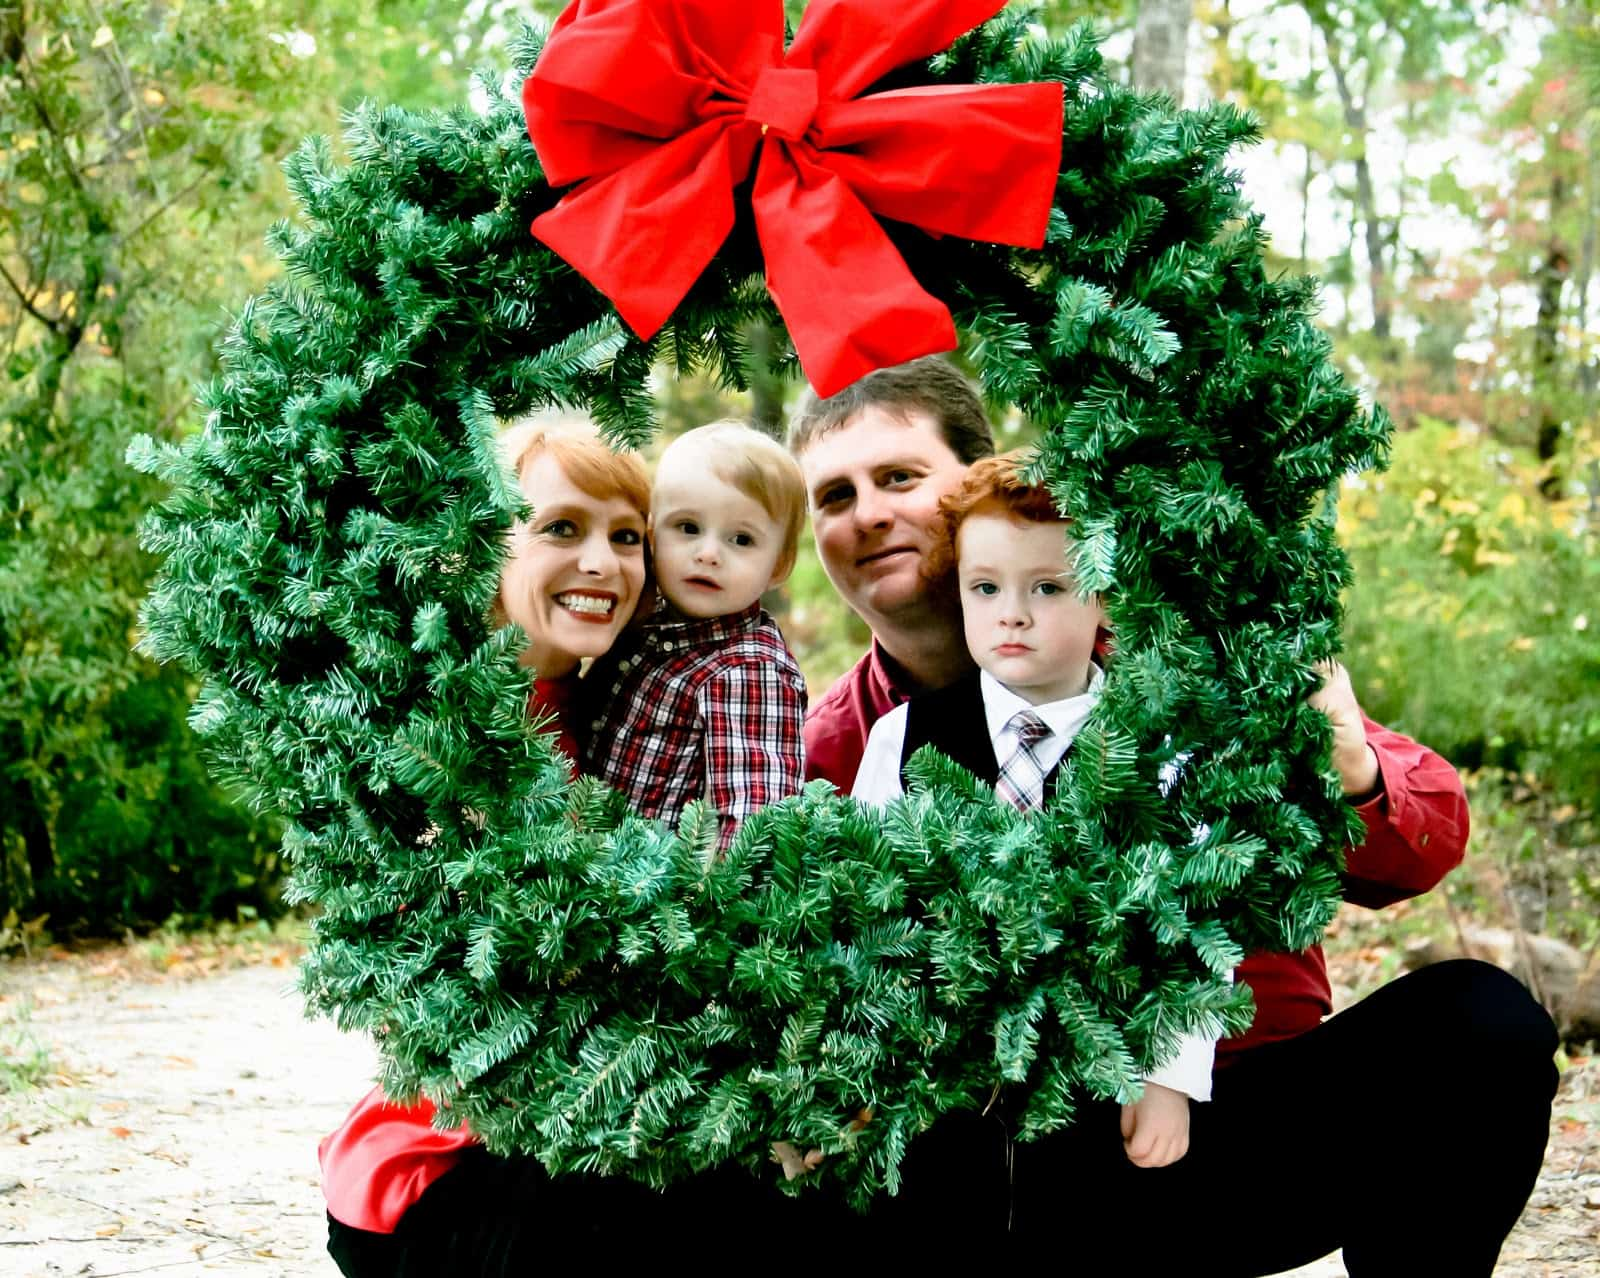 Peeking wreath picture